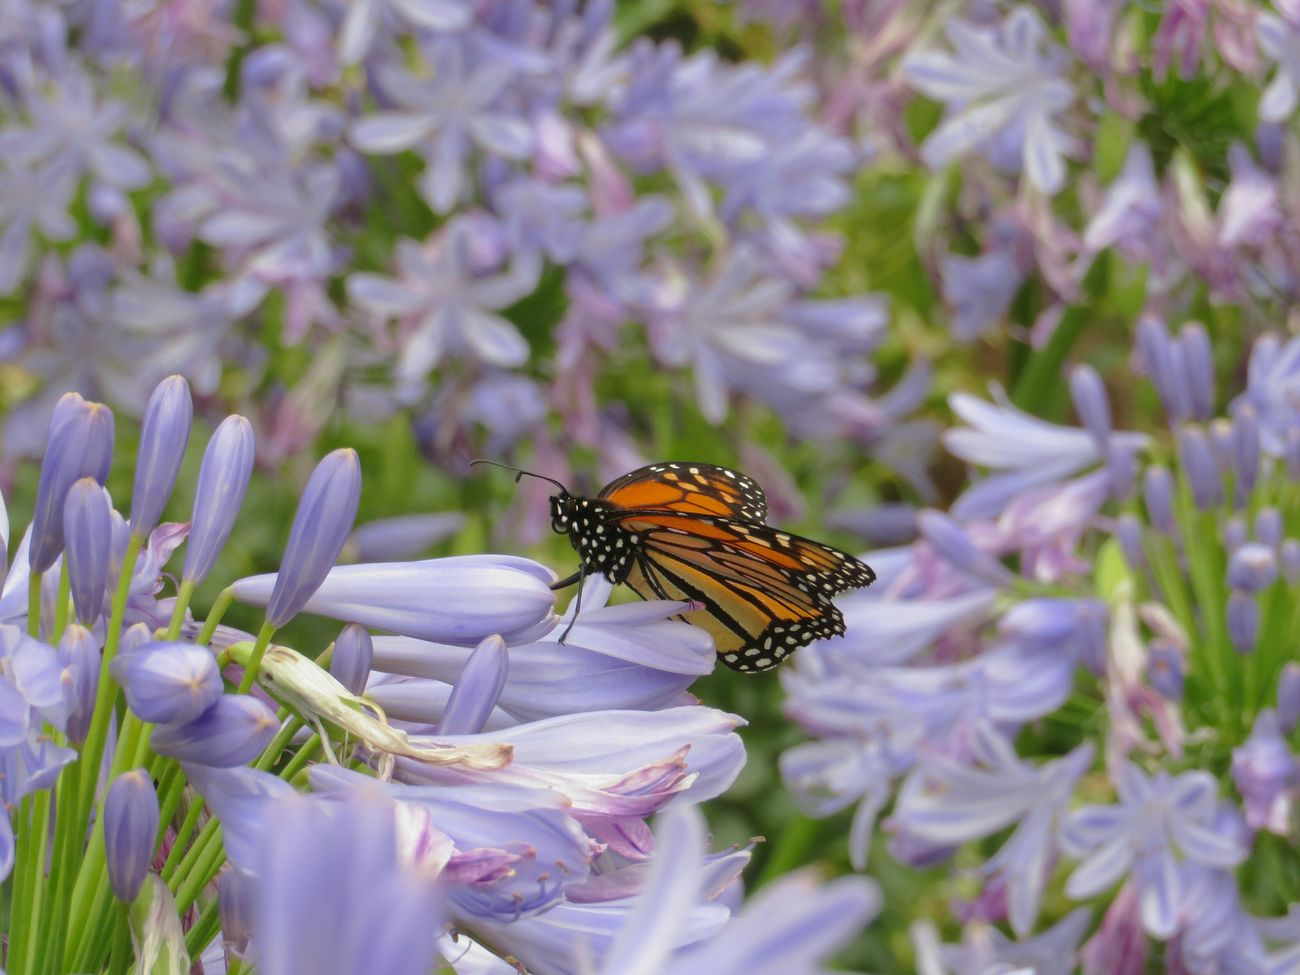 Agapanthus Flower Nature Beauty In Nature Butterfly Monarch Butterfly Insect Animals Animals In The Wild Growth Freshness Pollination Flower Head Blooming Purple In My Garden